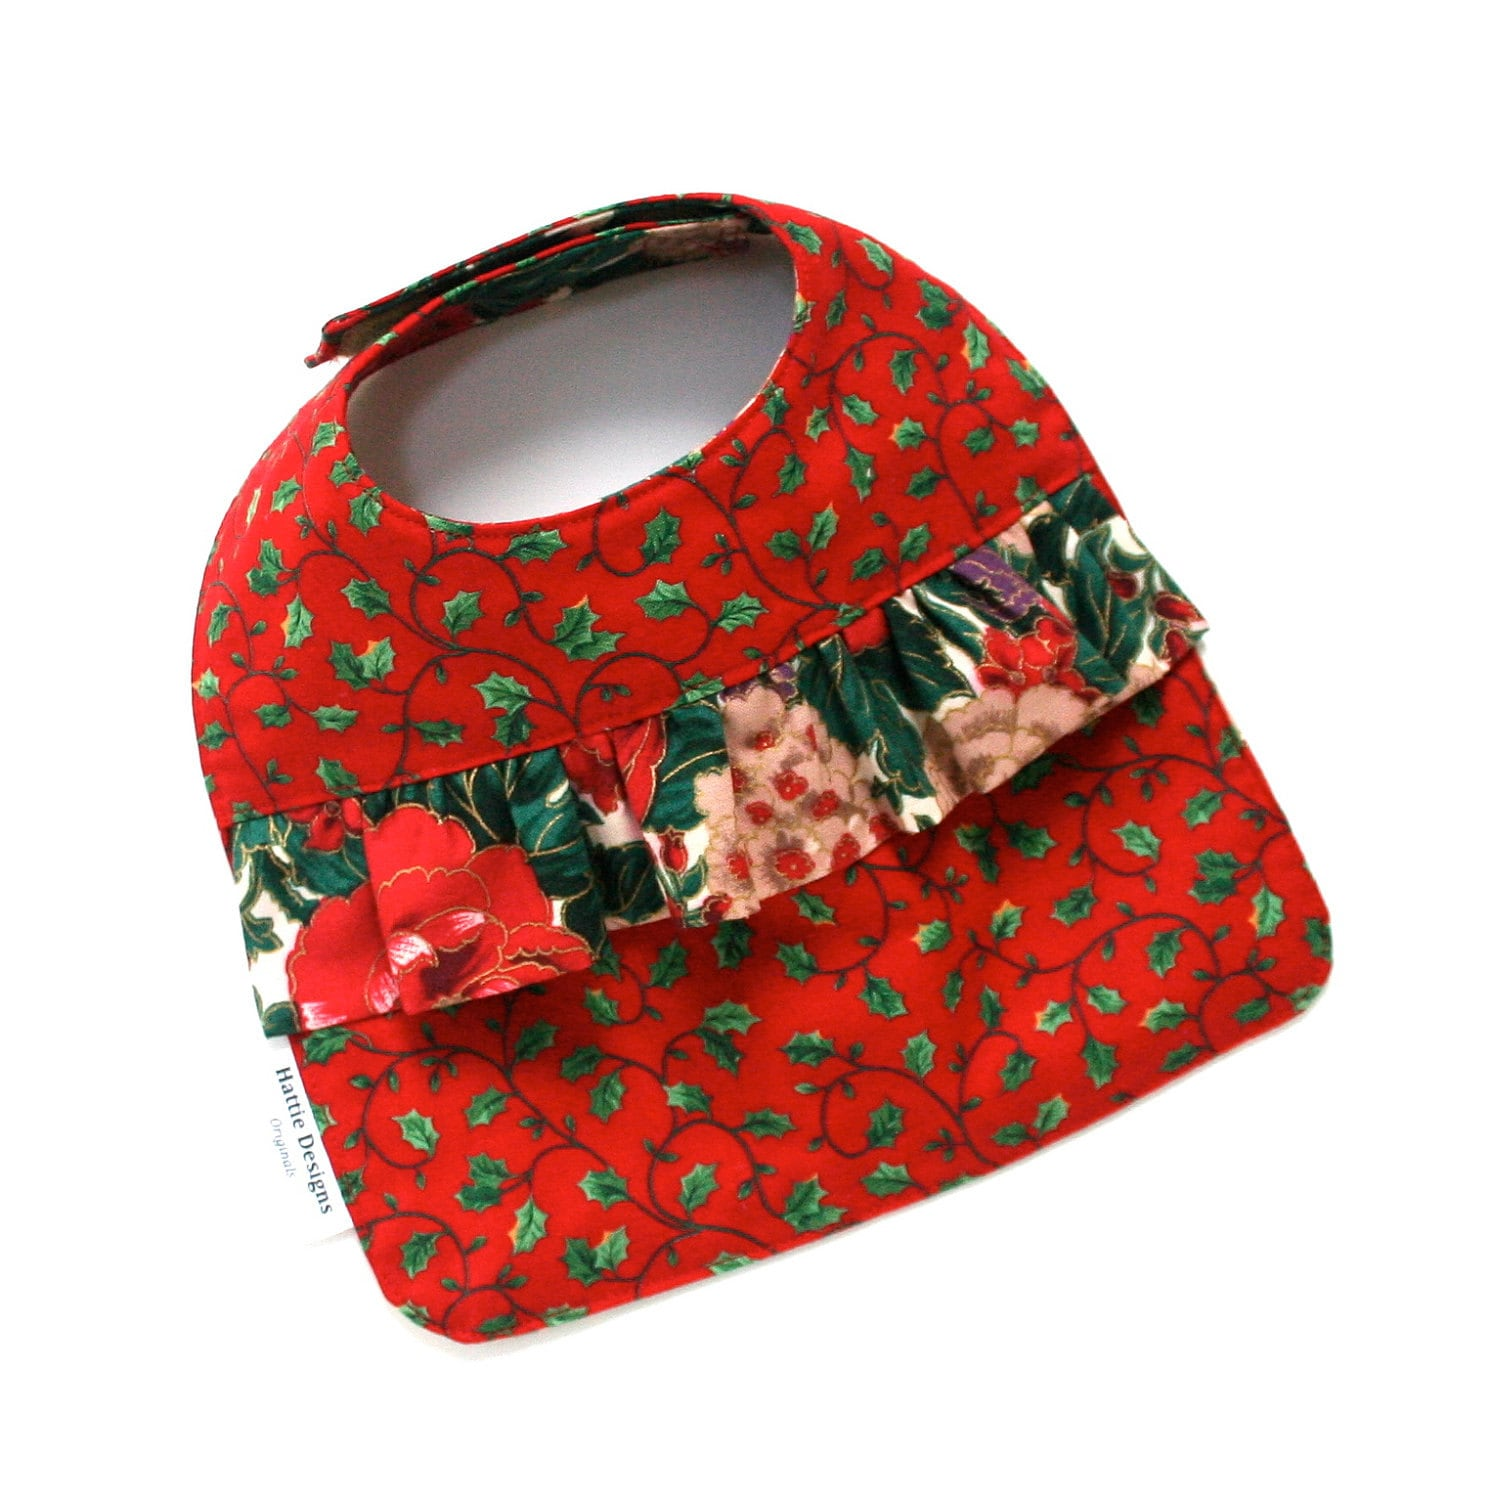 Baby Girl Bib Baby Girl Christmas Bib in Red Green and Purple Cotton